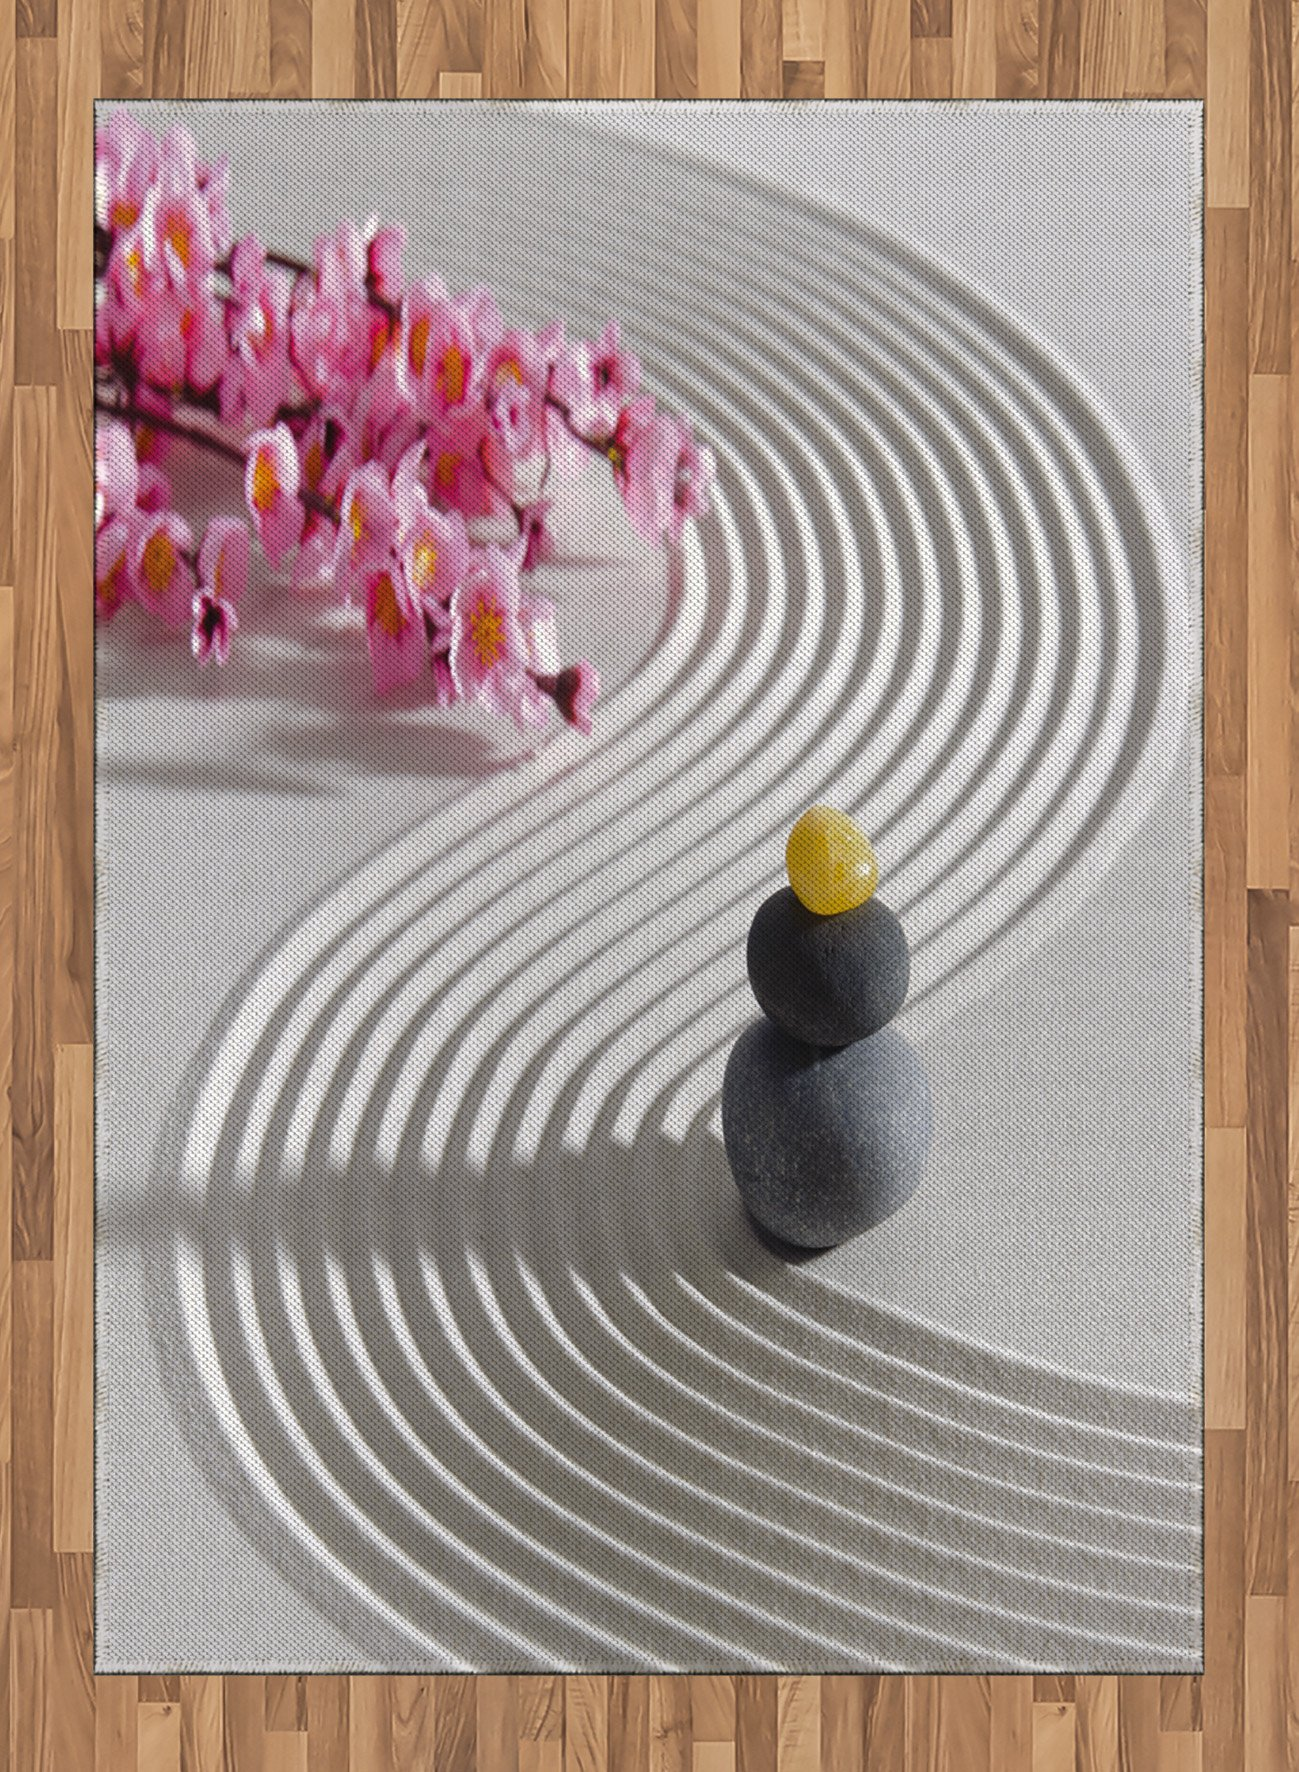 Spa Area Rug by Lunarable, Japanese Zen Stones of Meditation Sand with Orchids Relax Yoga Spirit Picture, Flat Woven Accent Rug for Living Room Bedroom Dining Room, 5.2 x 7.5 FT, Pearl Pink Dimgrey